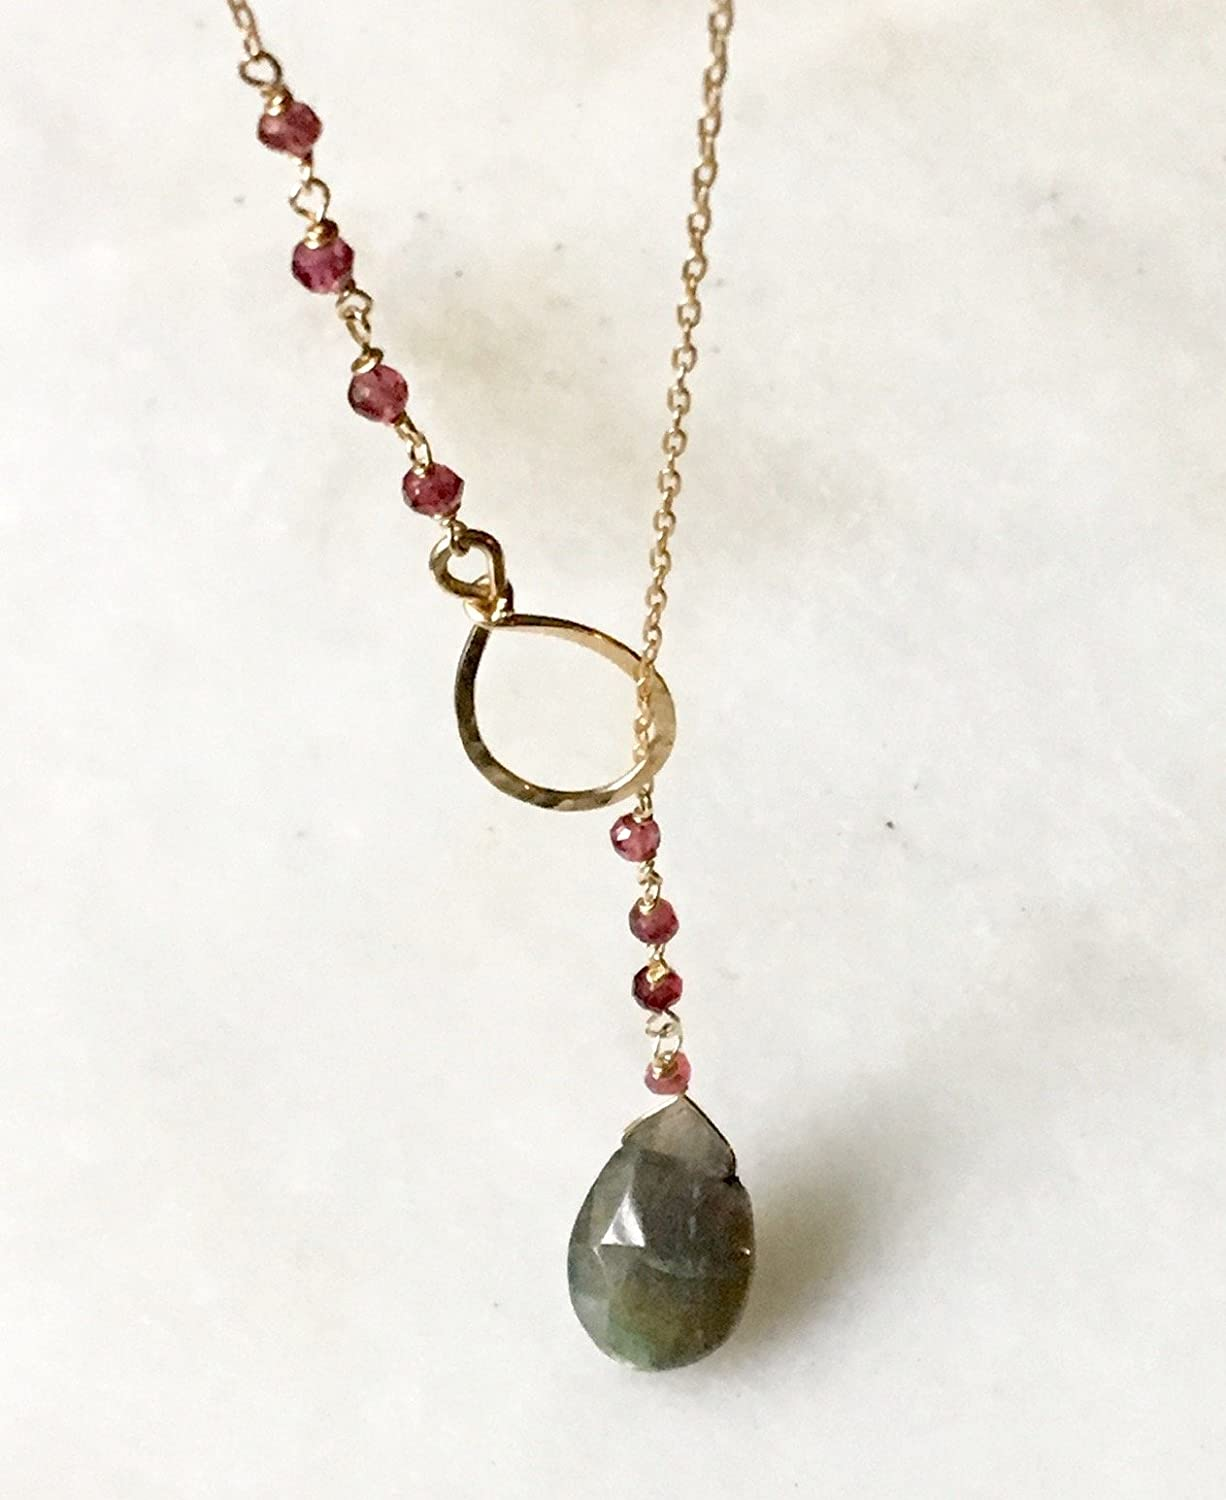 Labradorite and Pink Tourmaline Gemstones Lariat Necklace in Gold -Filled Chain - Handmade